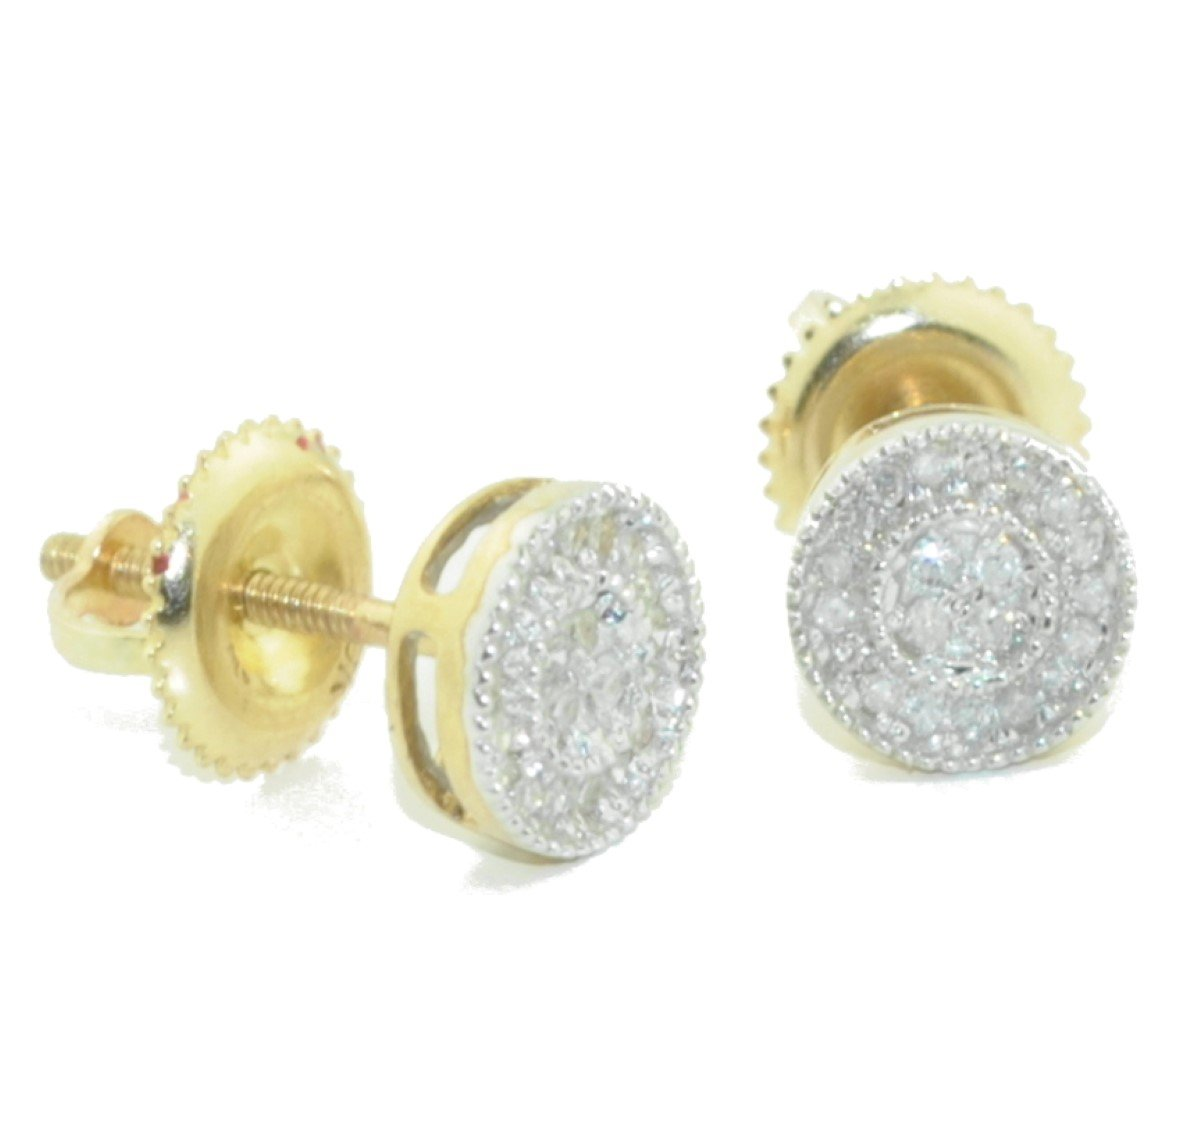 0.14 Cttw Pave Diamonds Round Stud Earrings 10k Yellow Gold Screw Back 6.5mm wide